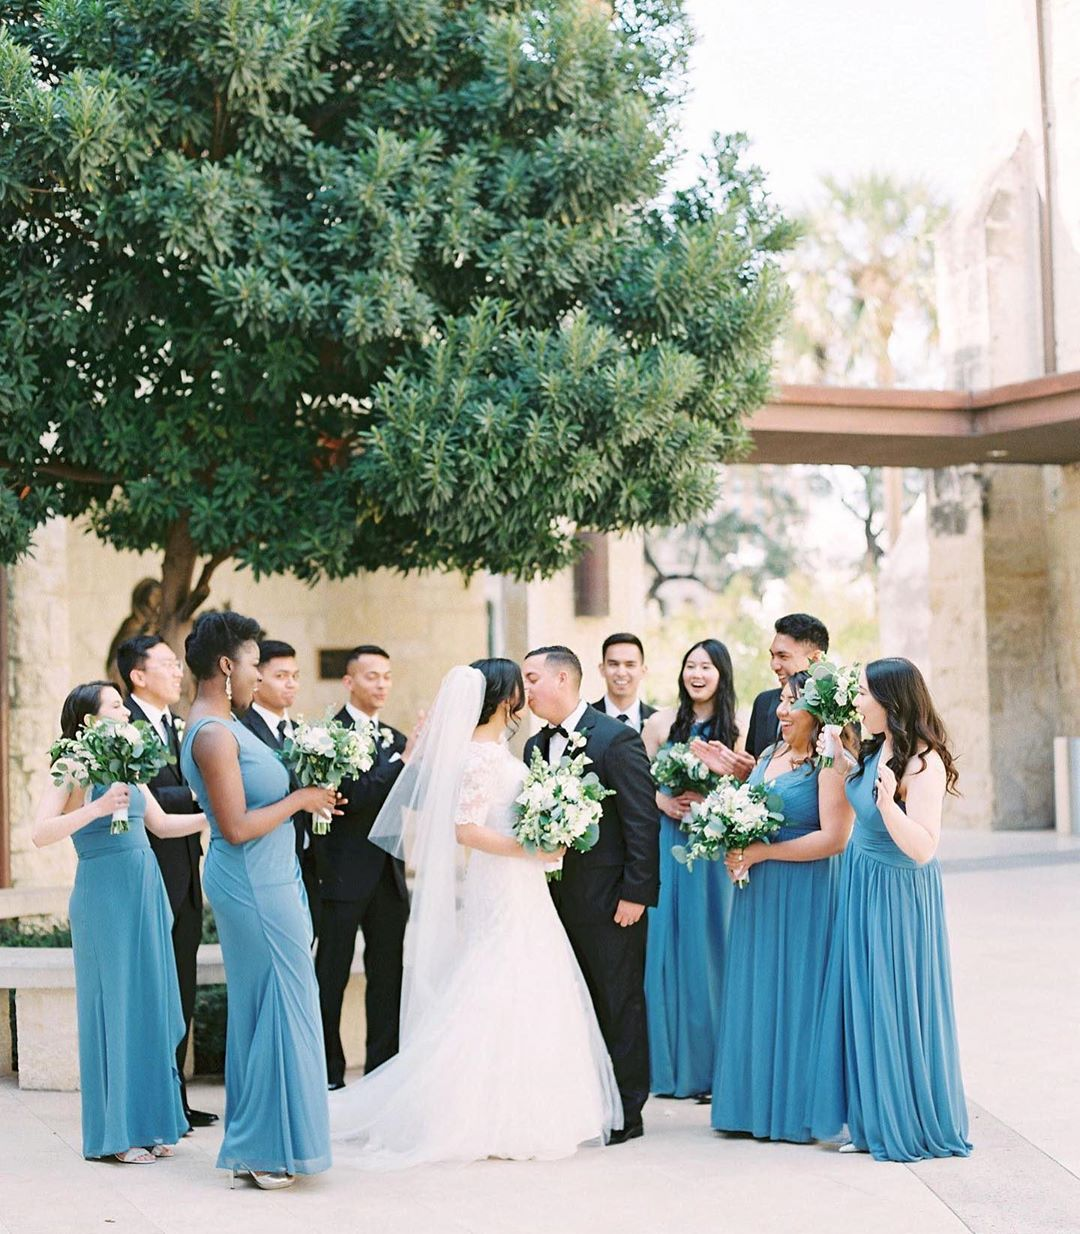 Steel Blue bridal party